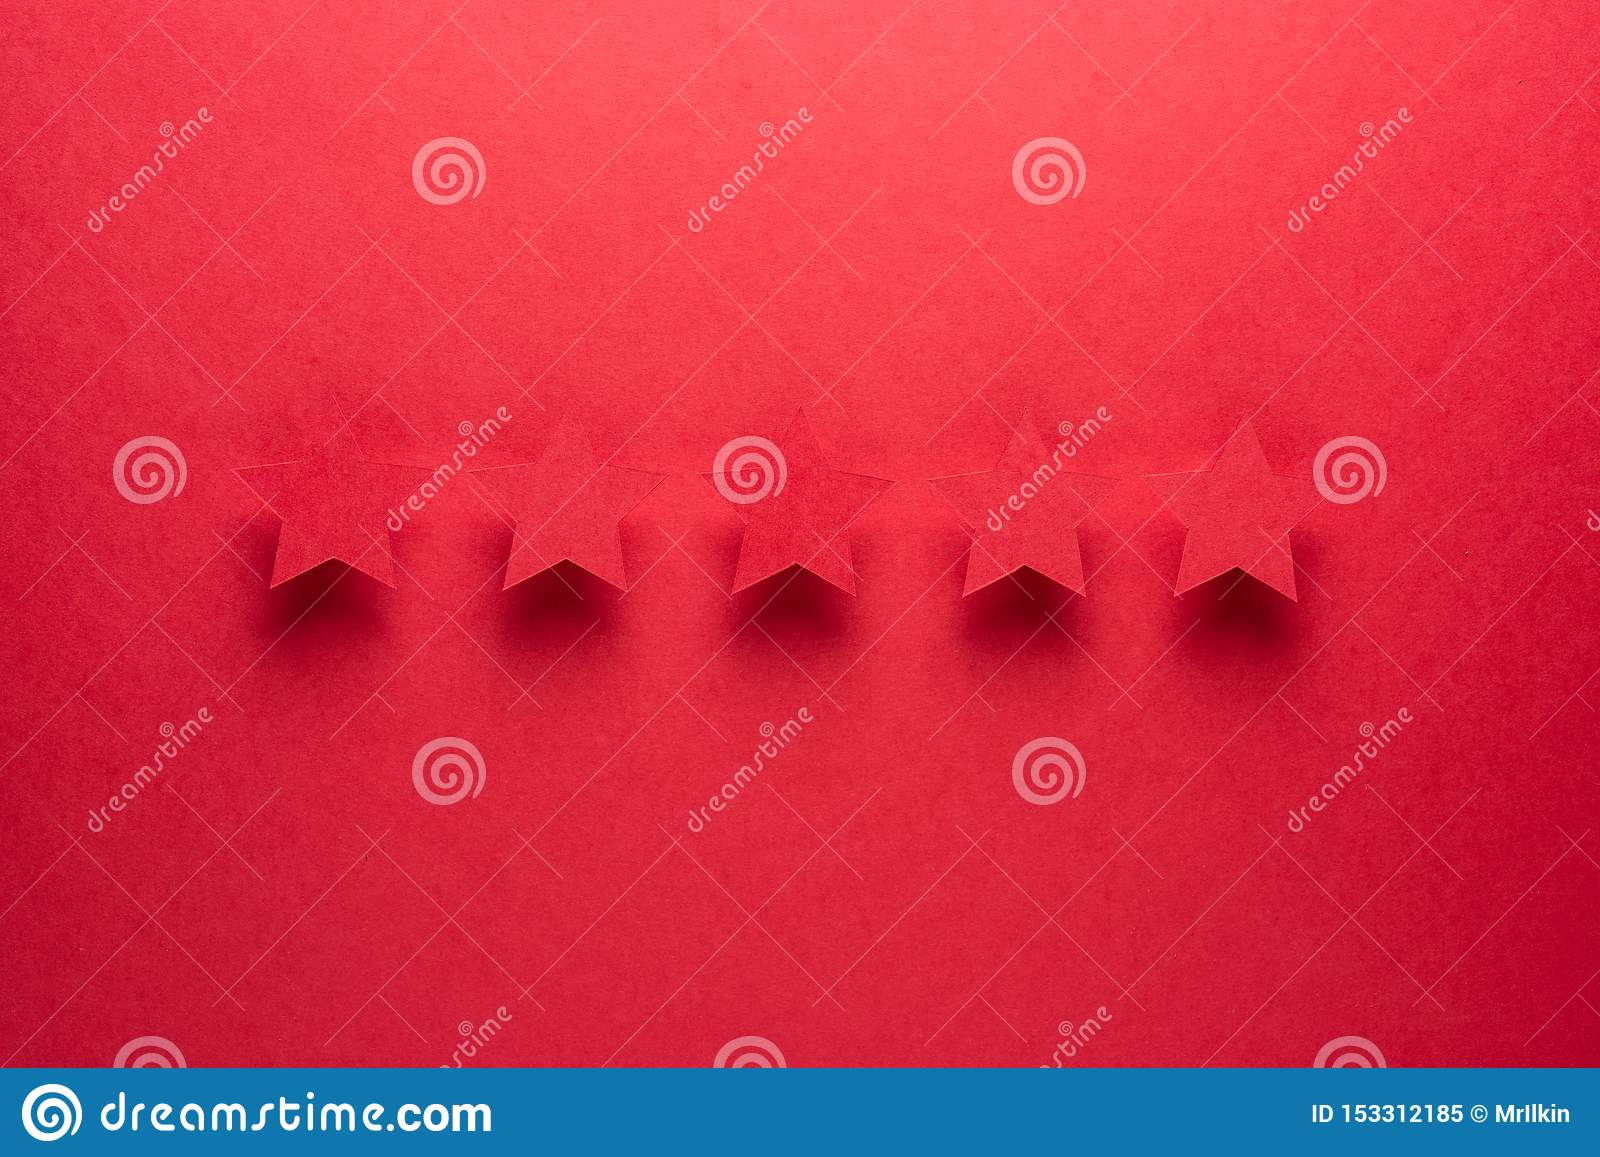 Feedback concept. Five red paper stars of approval on a red background.